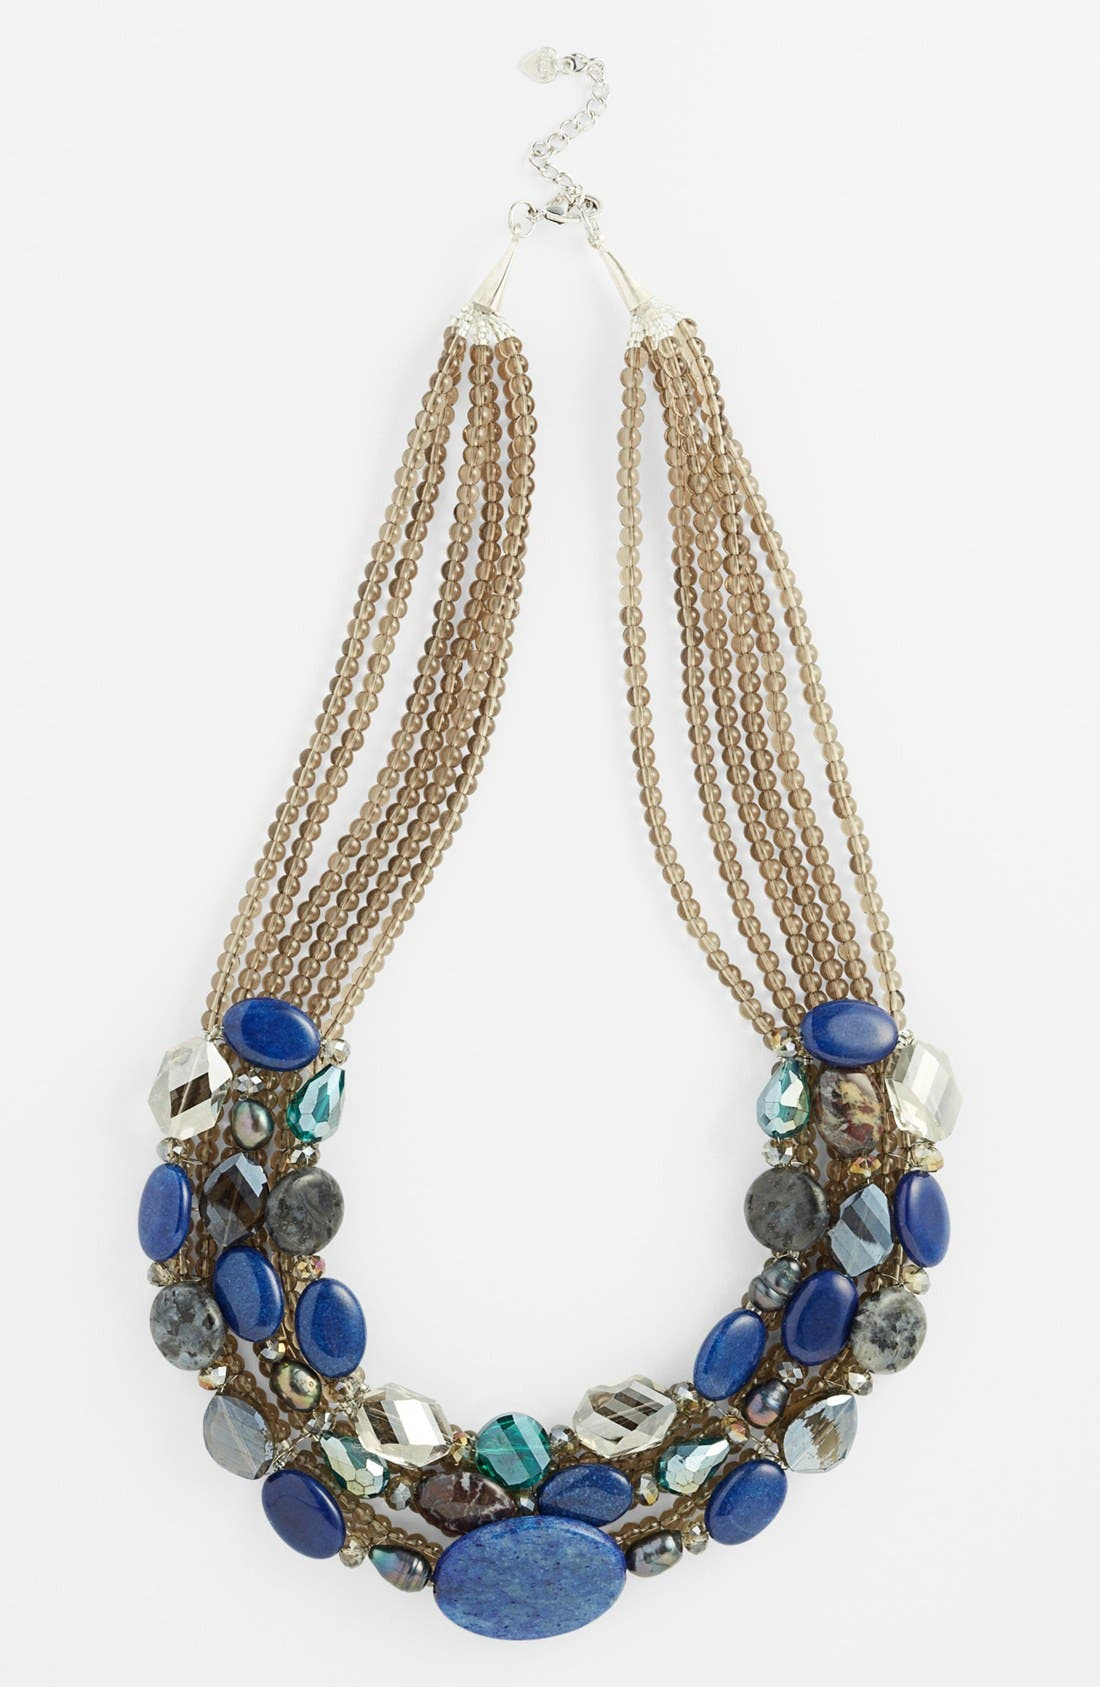 Alternate Image 1 Selected - Nakamol Design 'Smooth Stone' Collar Necklace